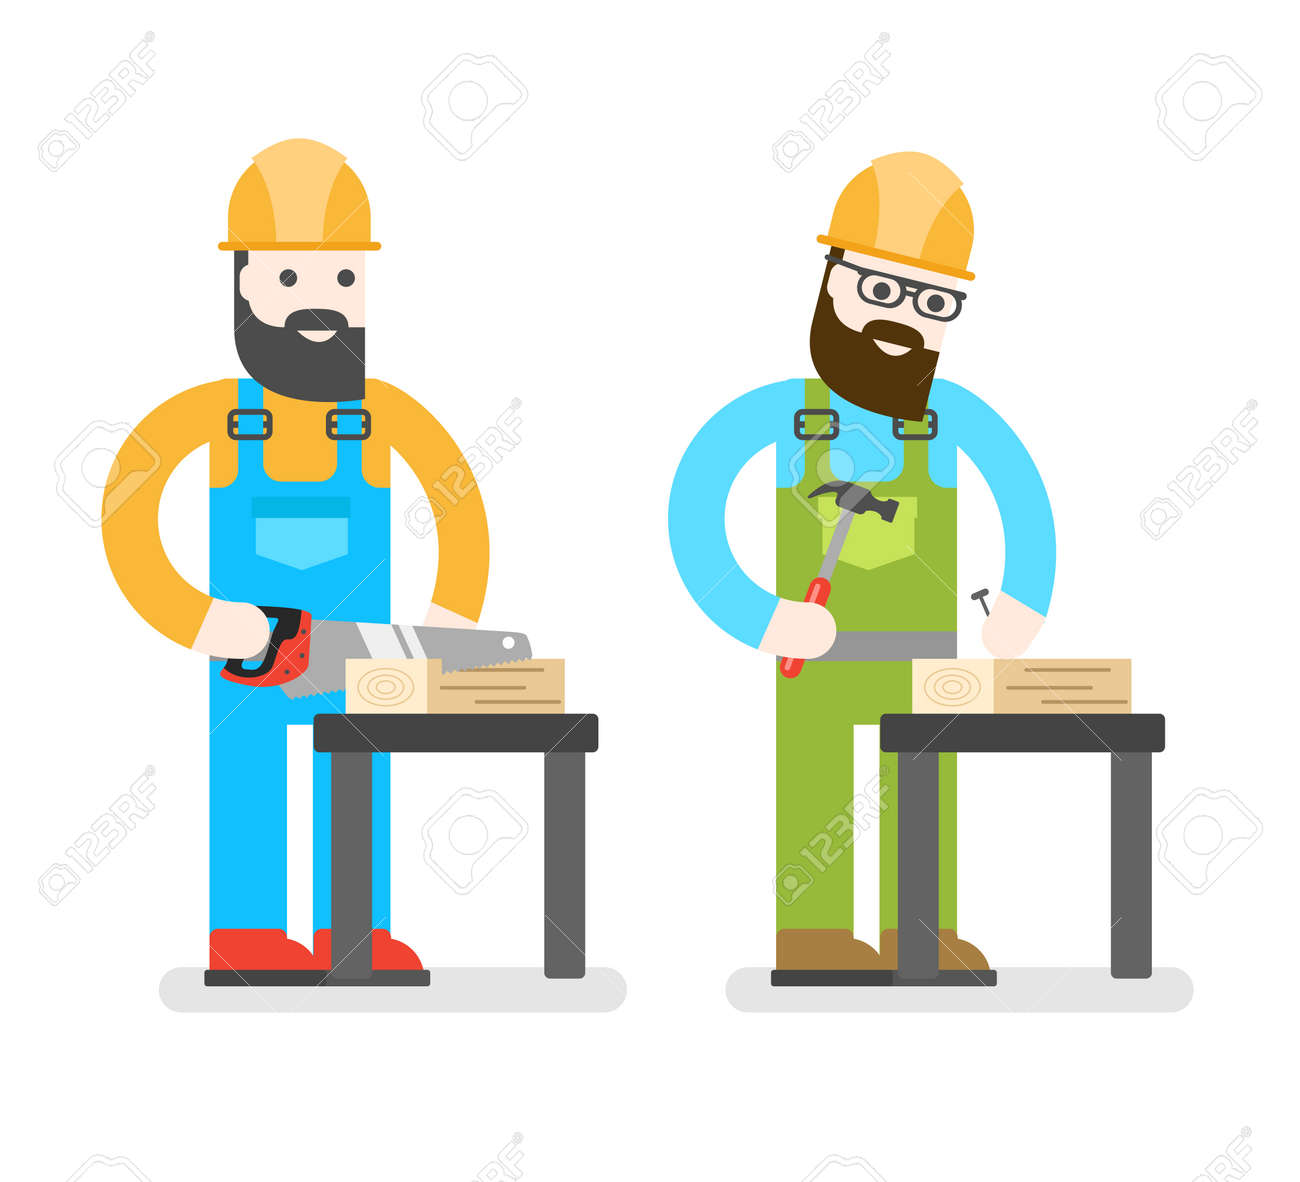 onstruction worker saw man sawing a board woodworcker vector onstruction worker saw man sawing a board woodworcker or joiner good builder in uniform service man